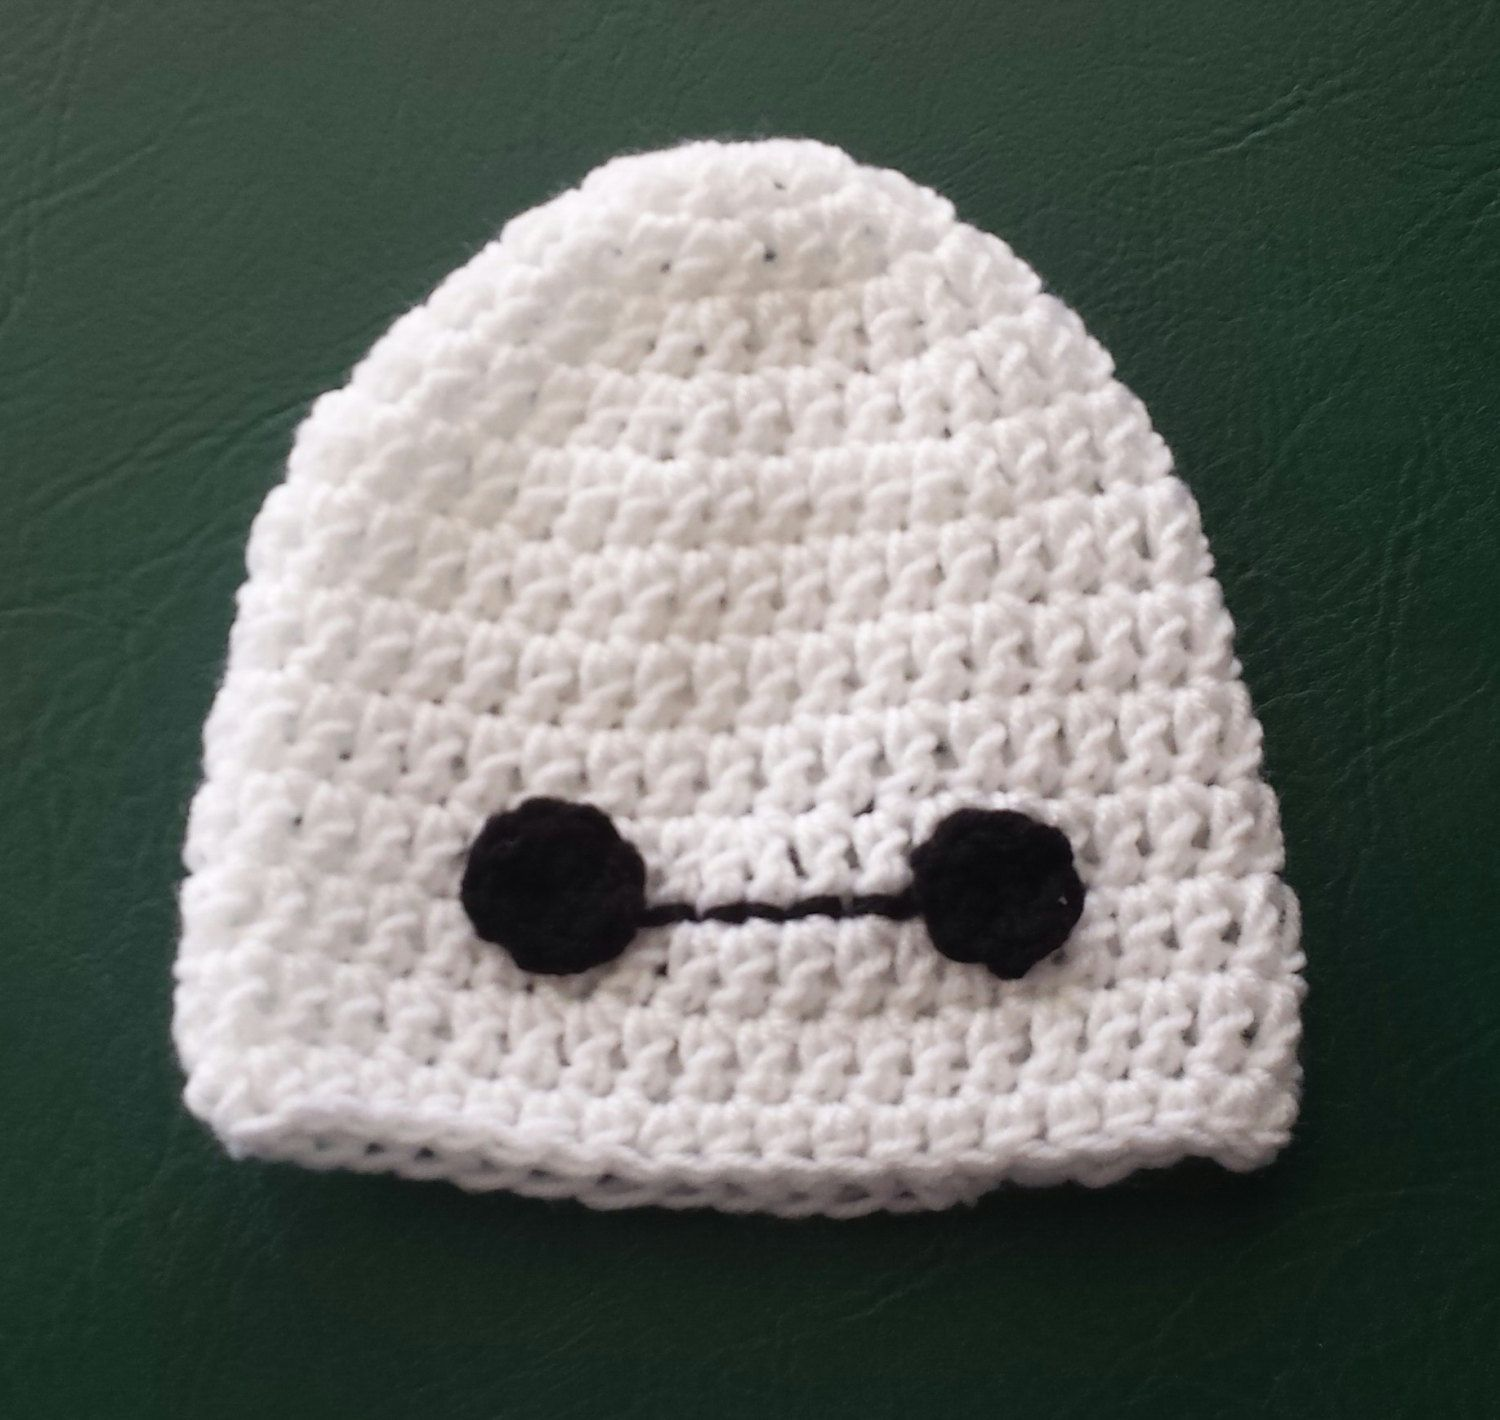 Crocheted Baymax inspired beanie from Big Hero 6 by KustomizedByKat on Etsy